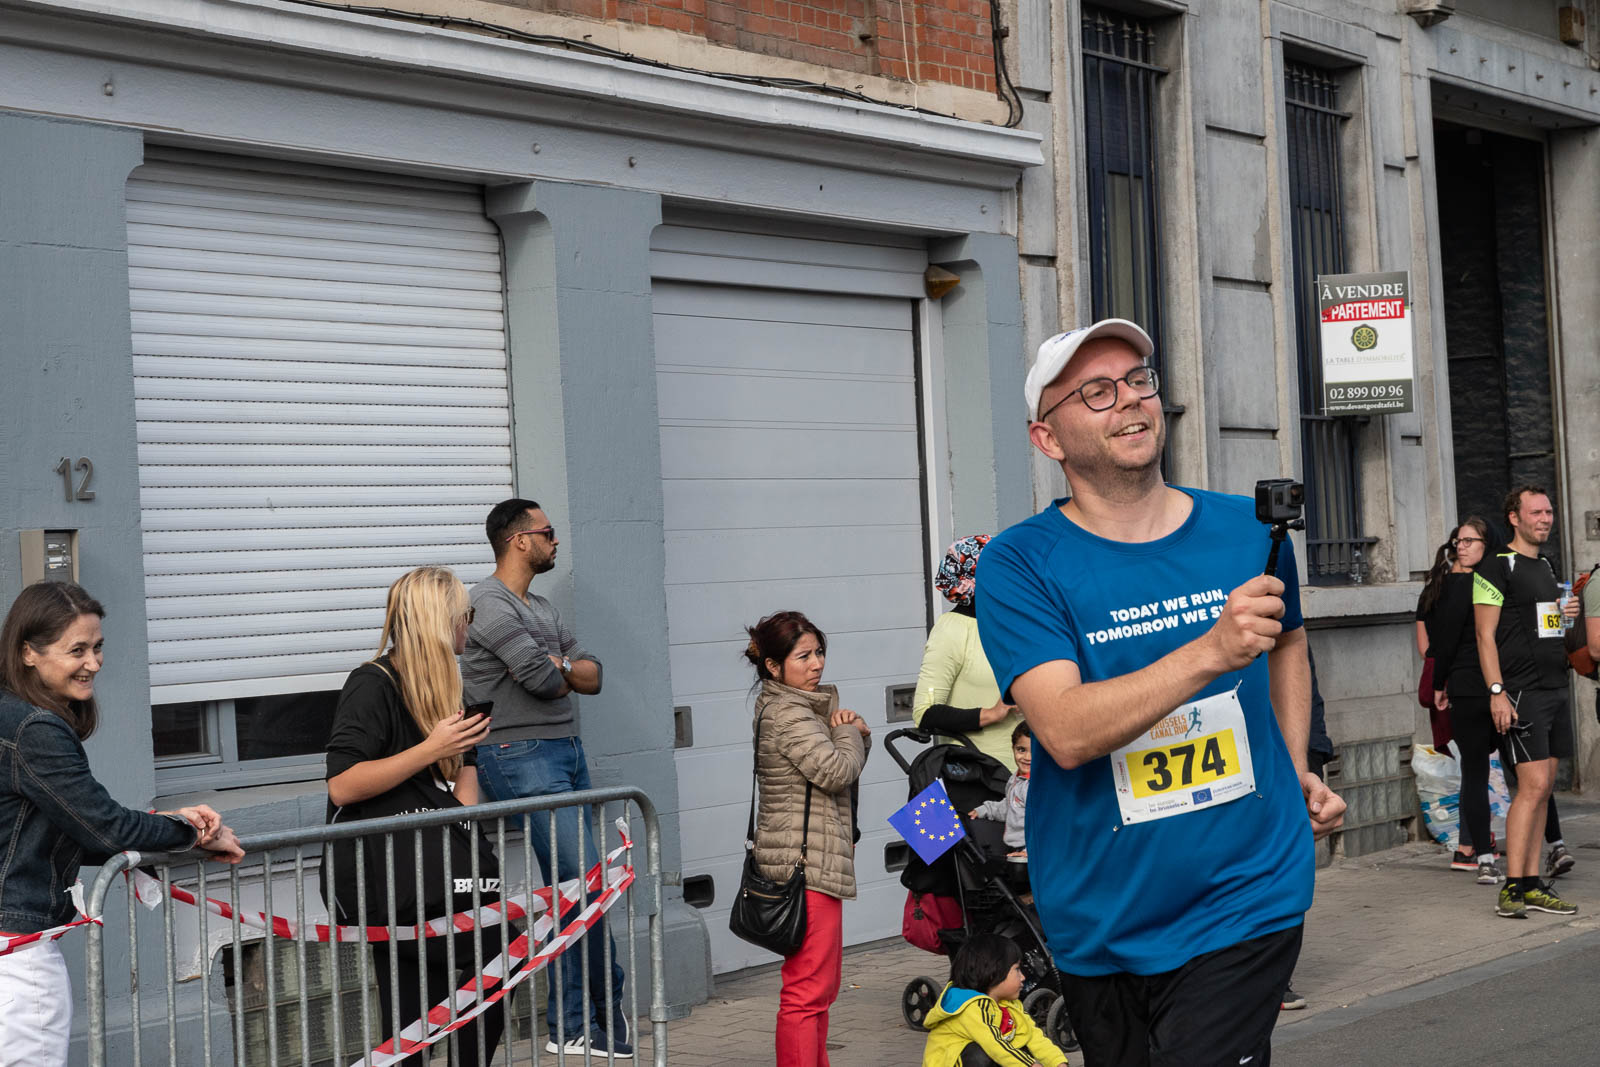 PIC_EVENT_20181020_BRUSSELS-CANAL-RUN_NIKON_021.jpg